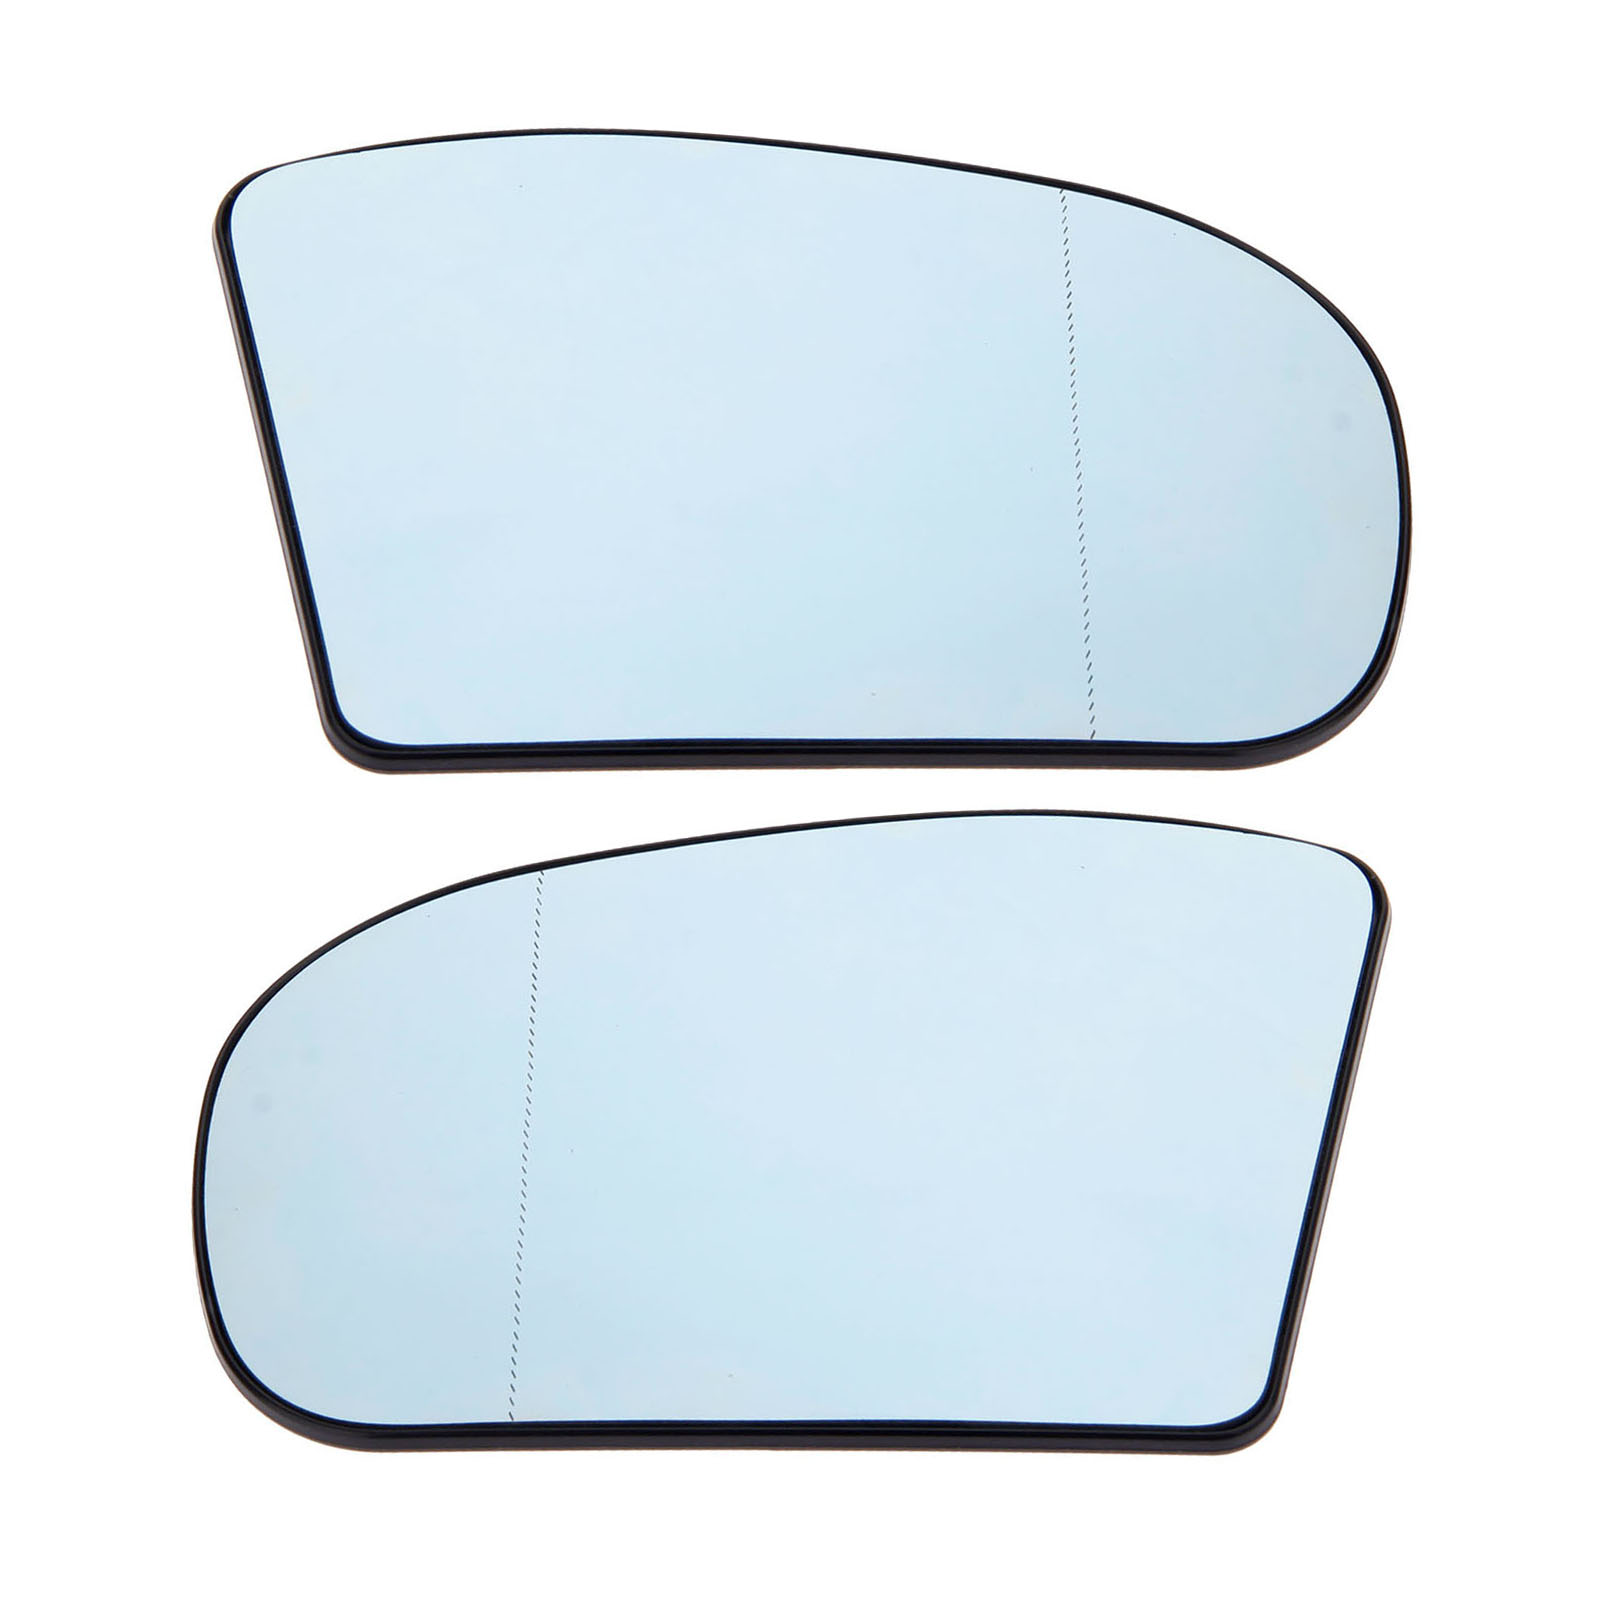 Yetaha 2PCS Wide Angle Left&Right Heated Wing Door Mirror Glass For Mercedes Benz E/C Class C230 C320 E350 E500 203810012 Blue